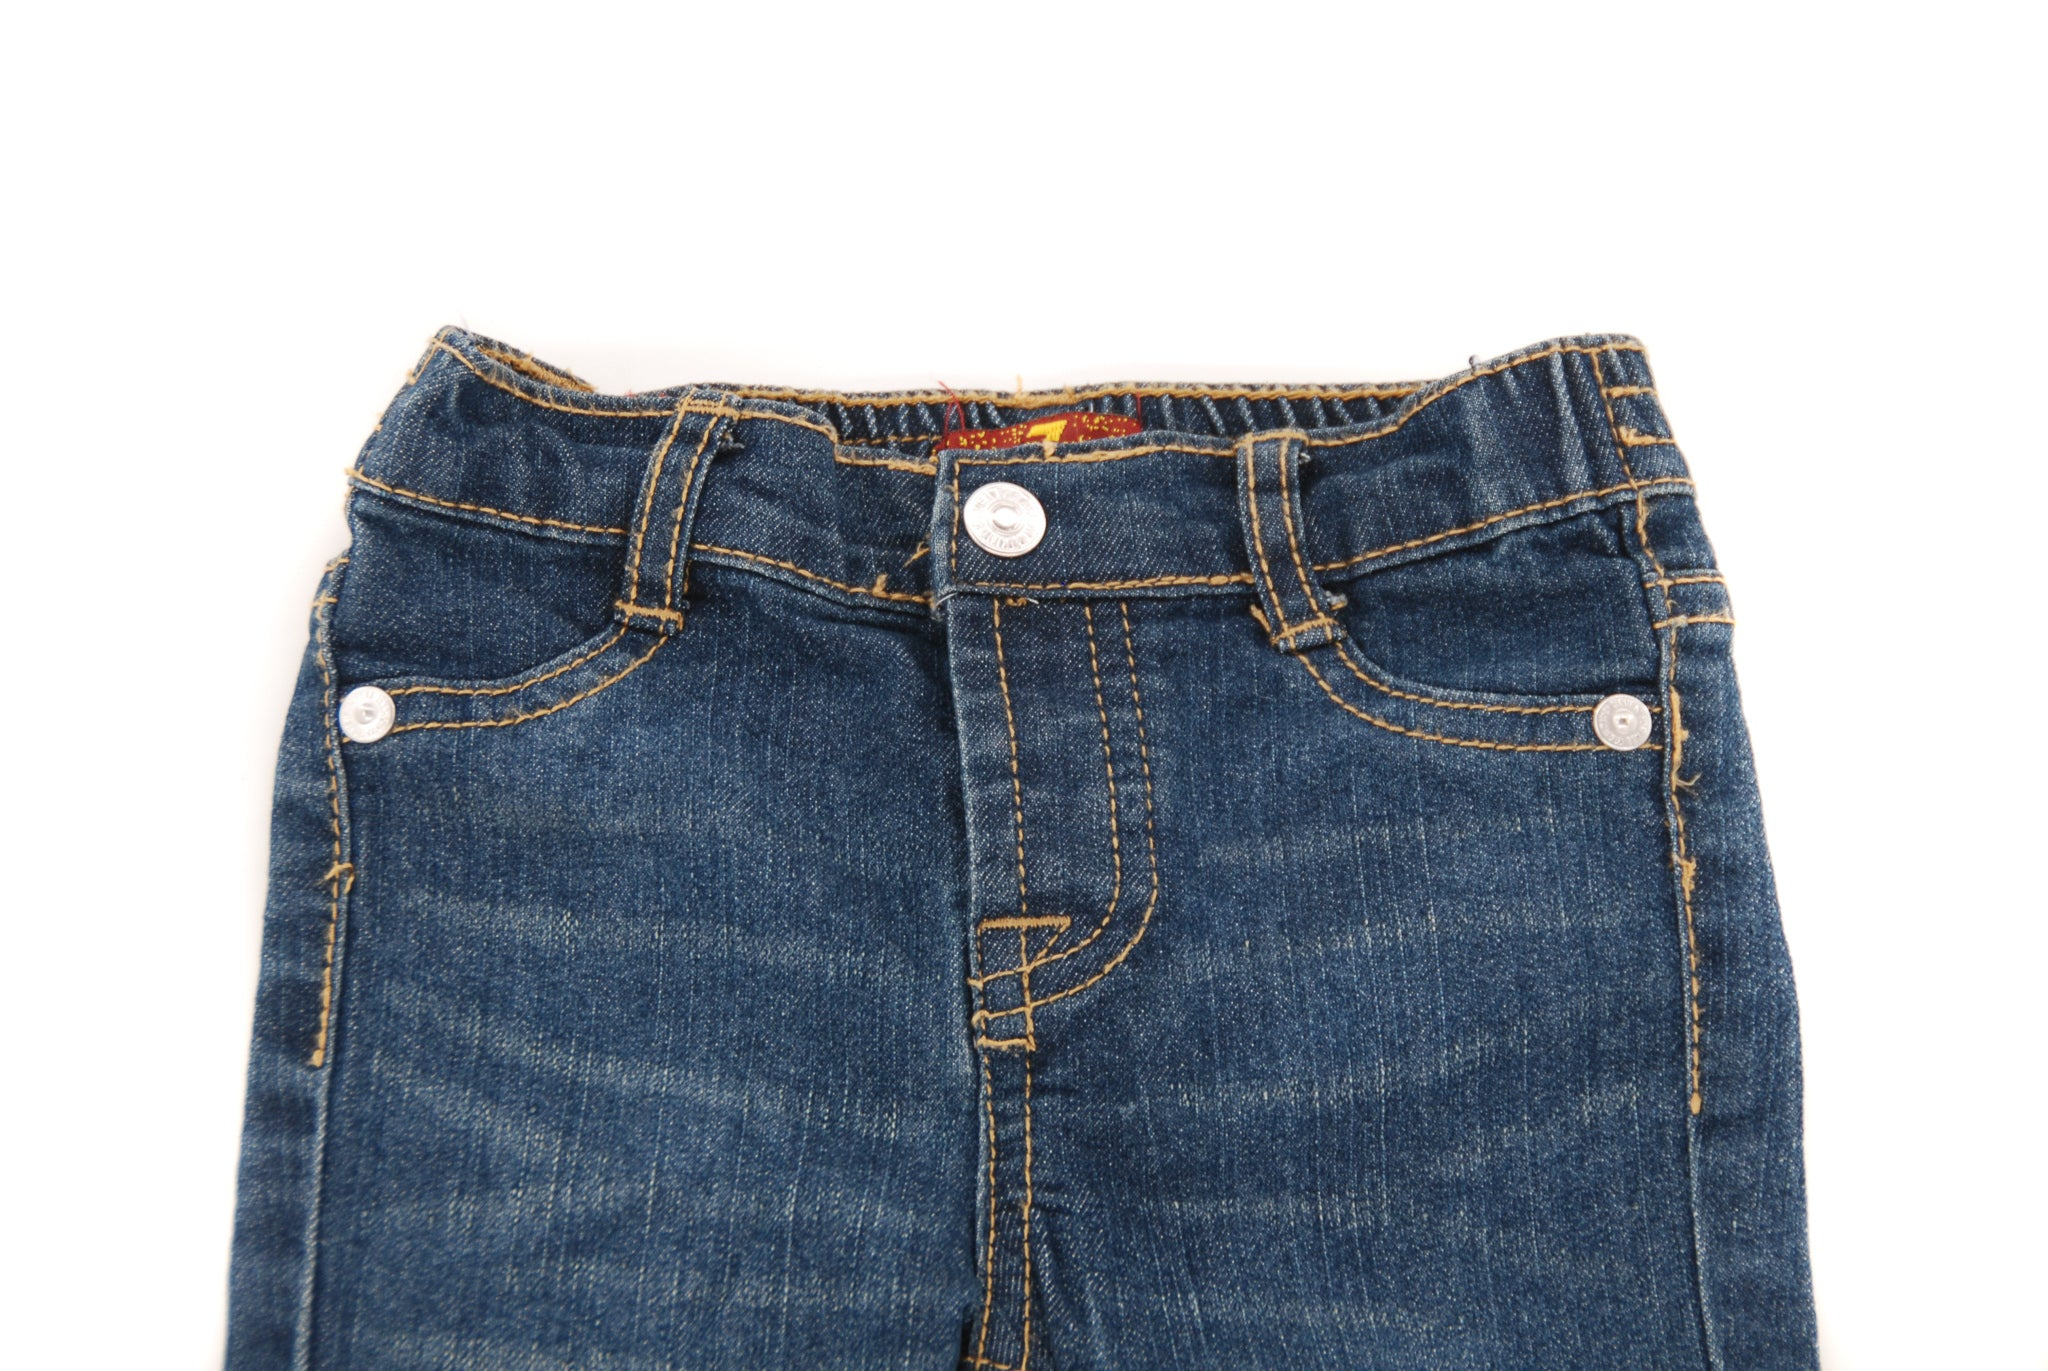 pimienta Compadecerse Respetuoso  7 For All Mankind, Baby Boys Jeans, 6-9 Months – KIDSWEAR COLLECTIVE